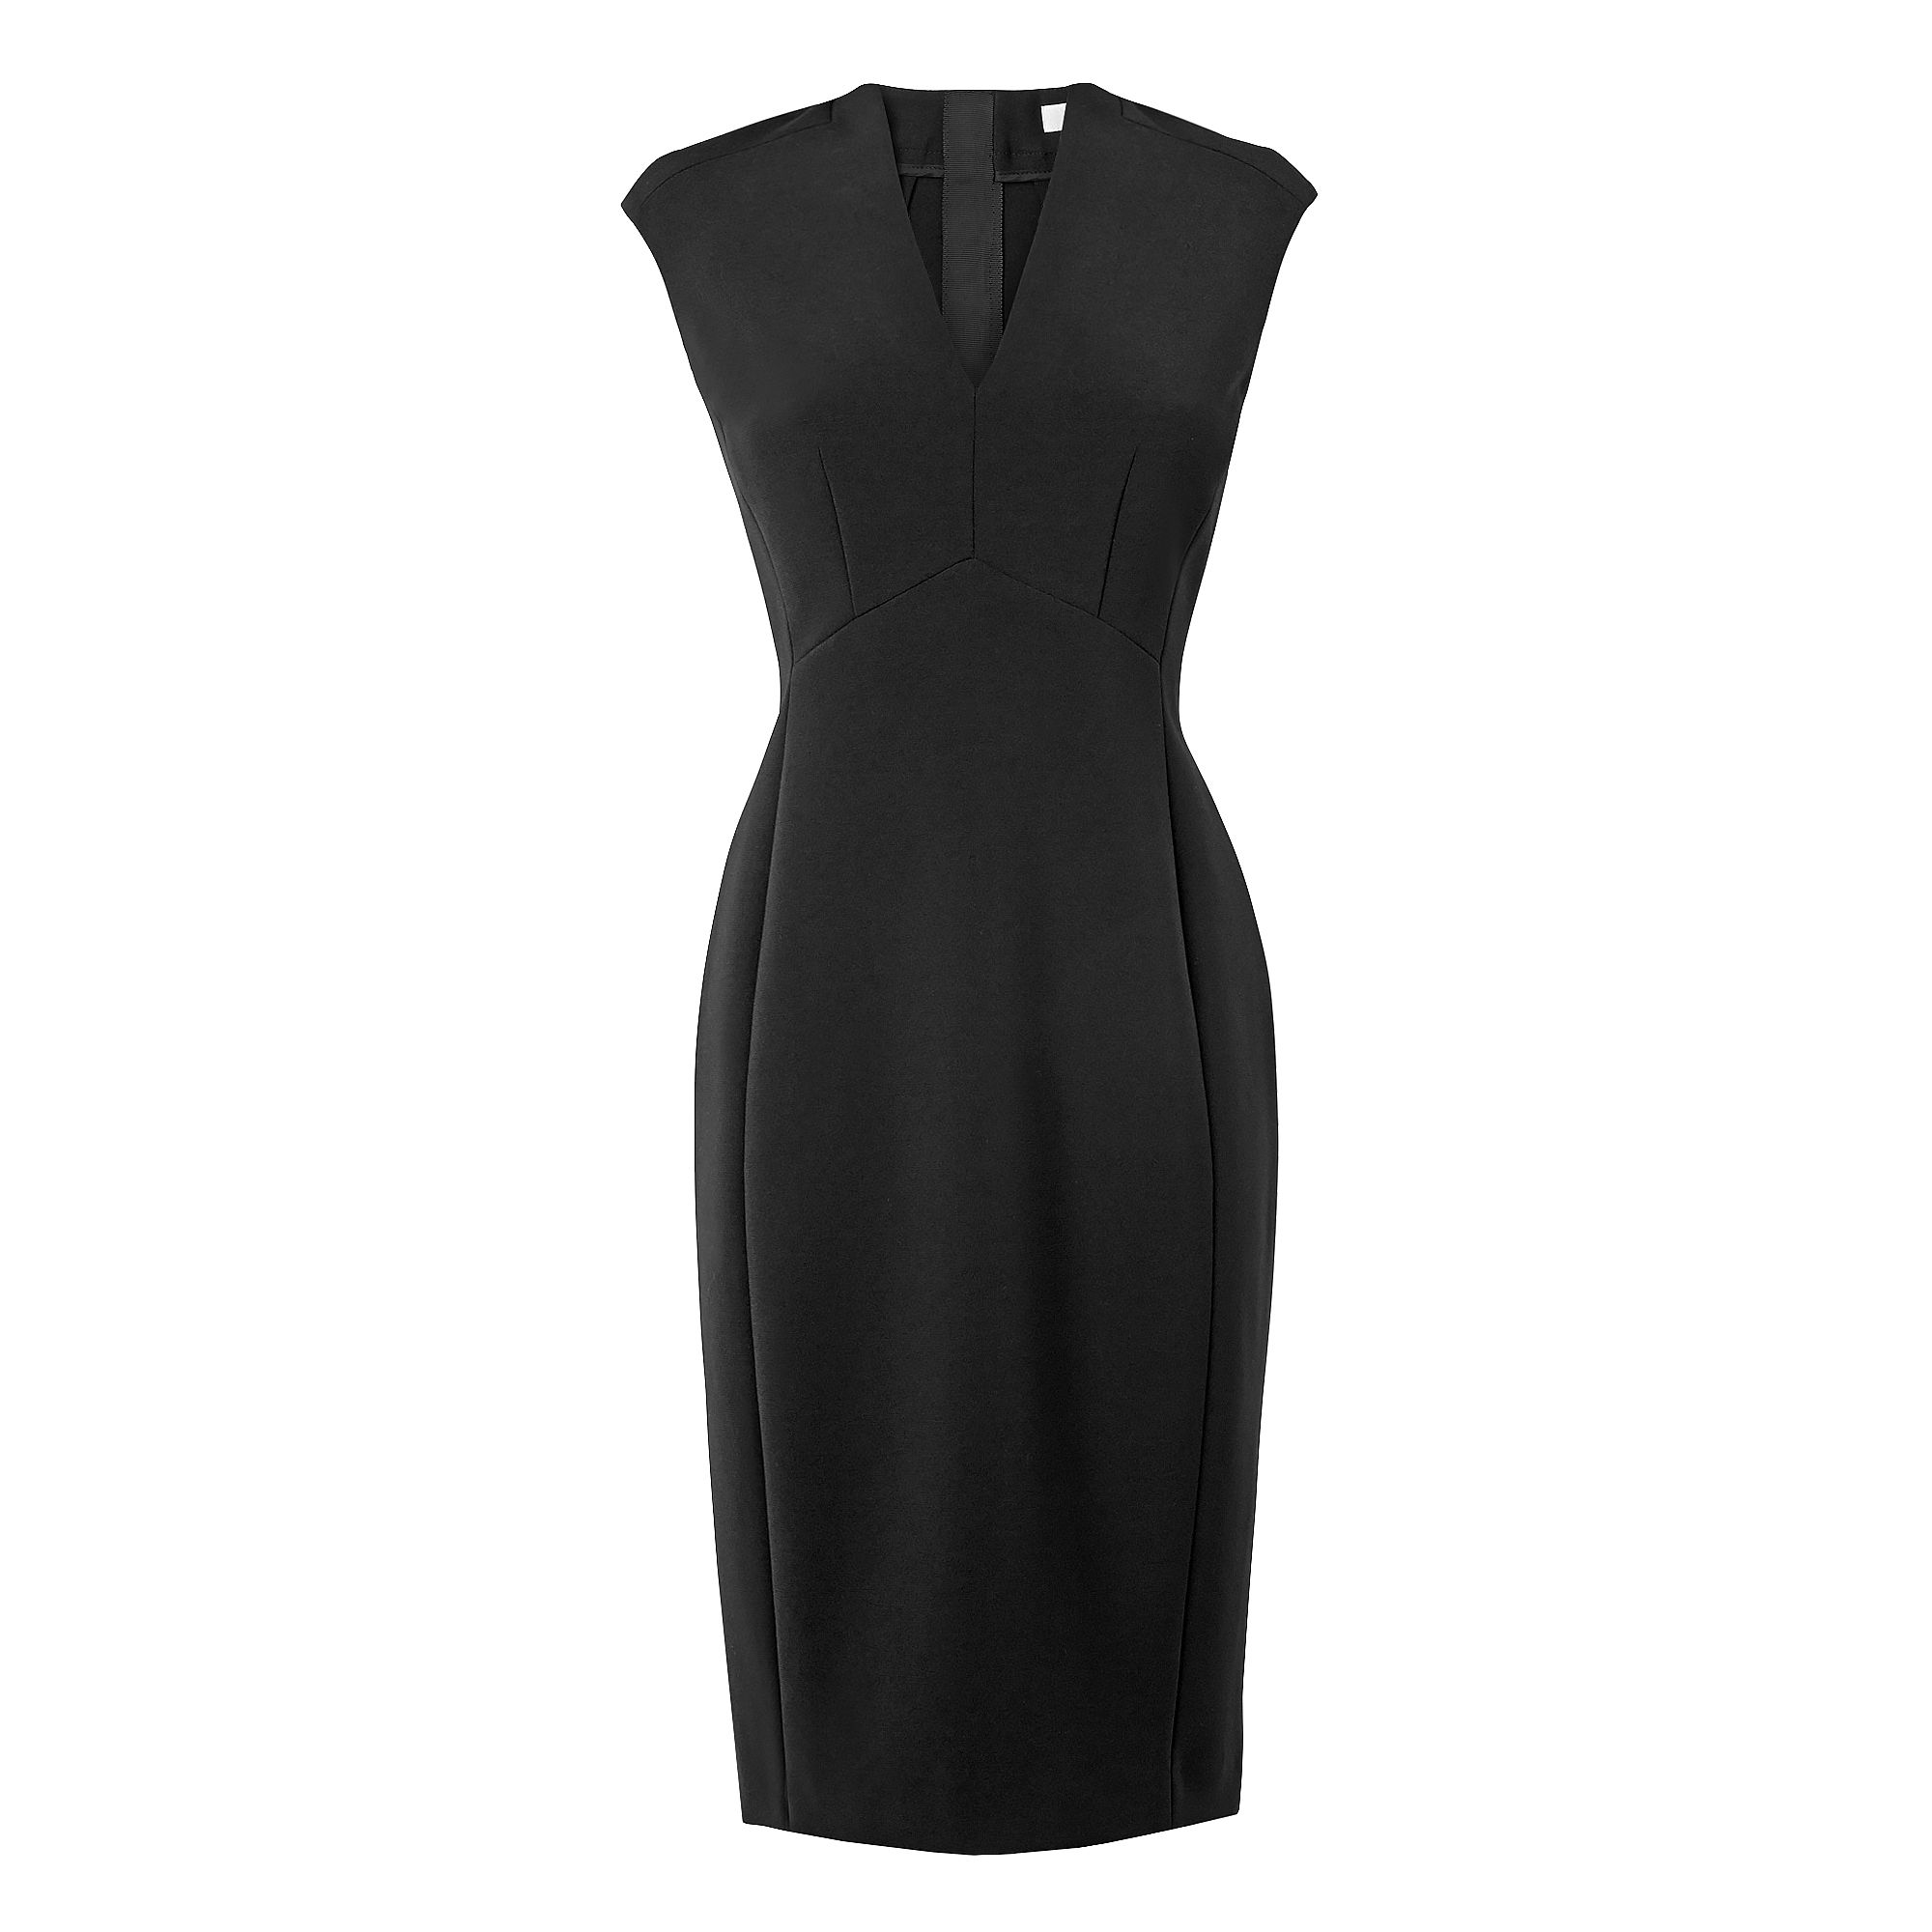 Aniva Cap Sleeve Collar Fitted Dress